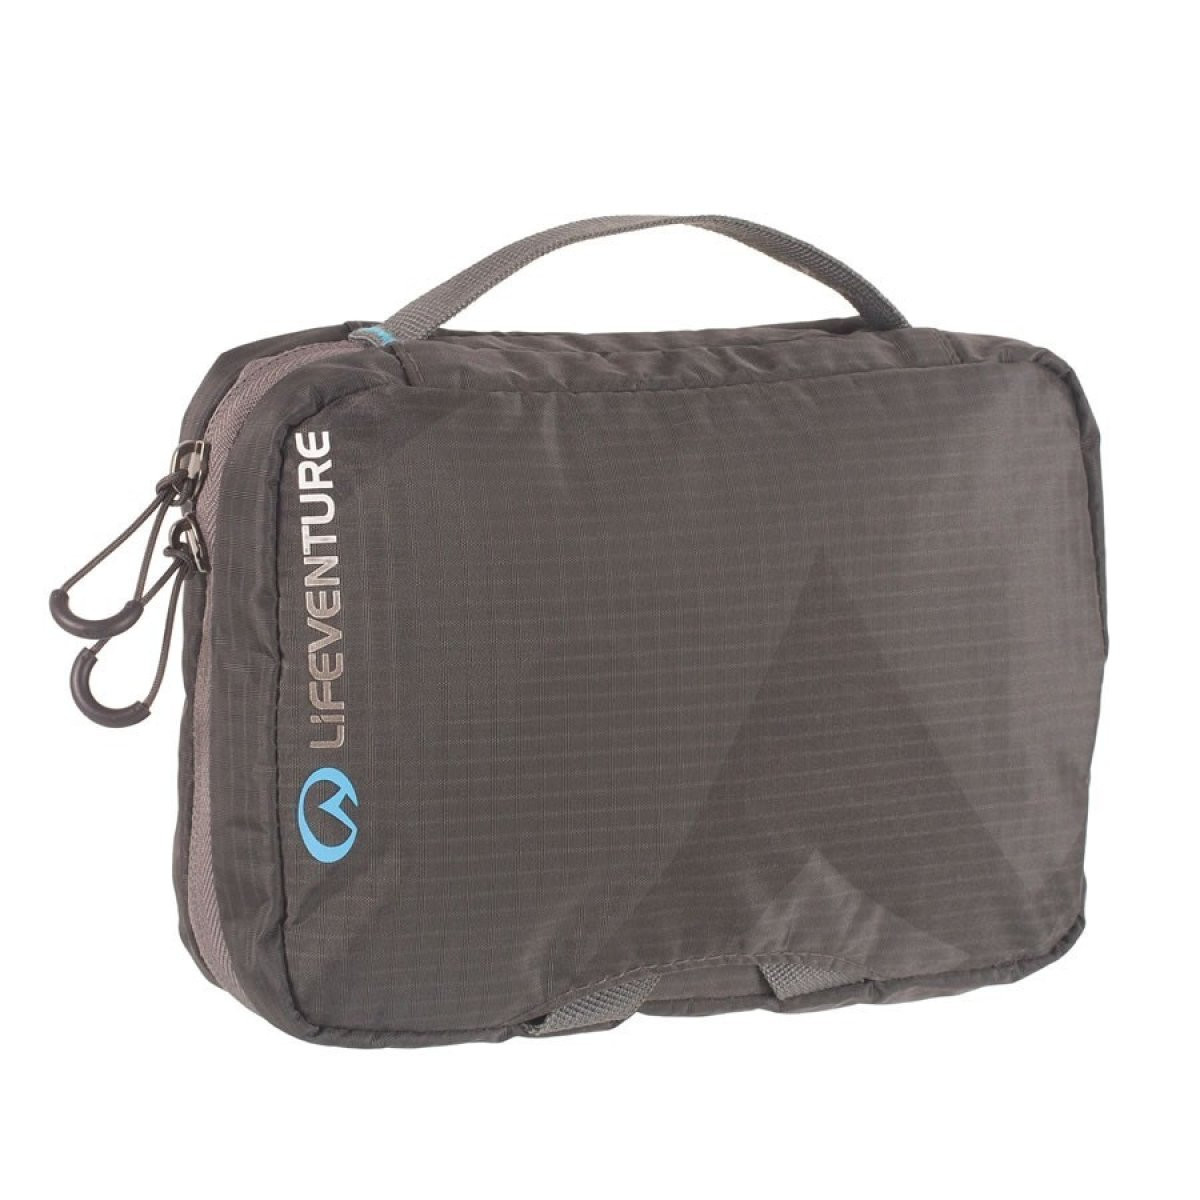 Сумка Lifeventure Wash Bag Small grey 64035